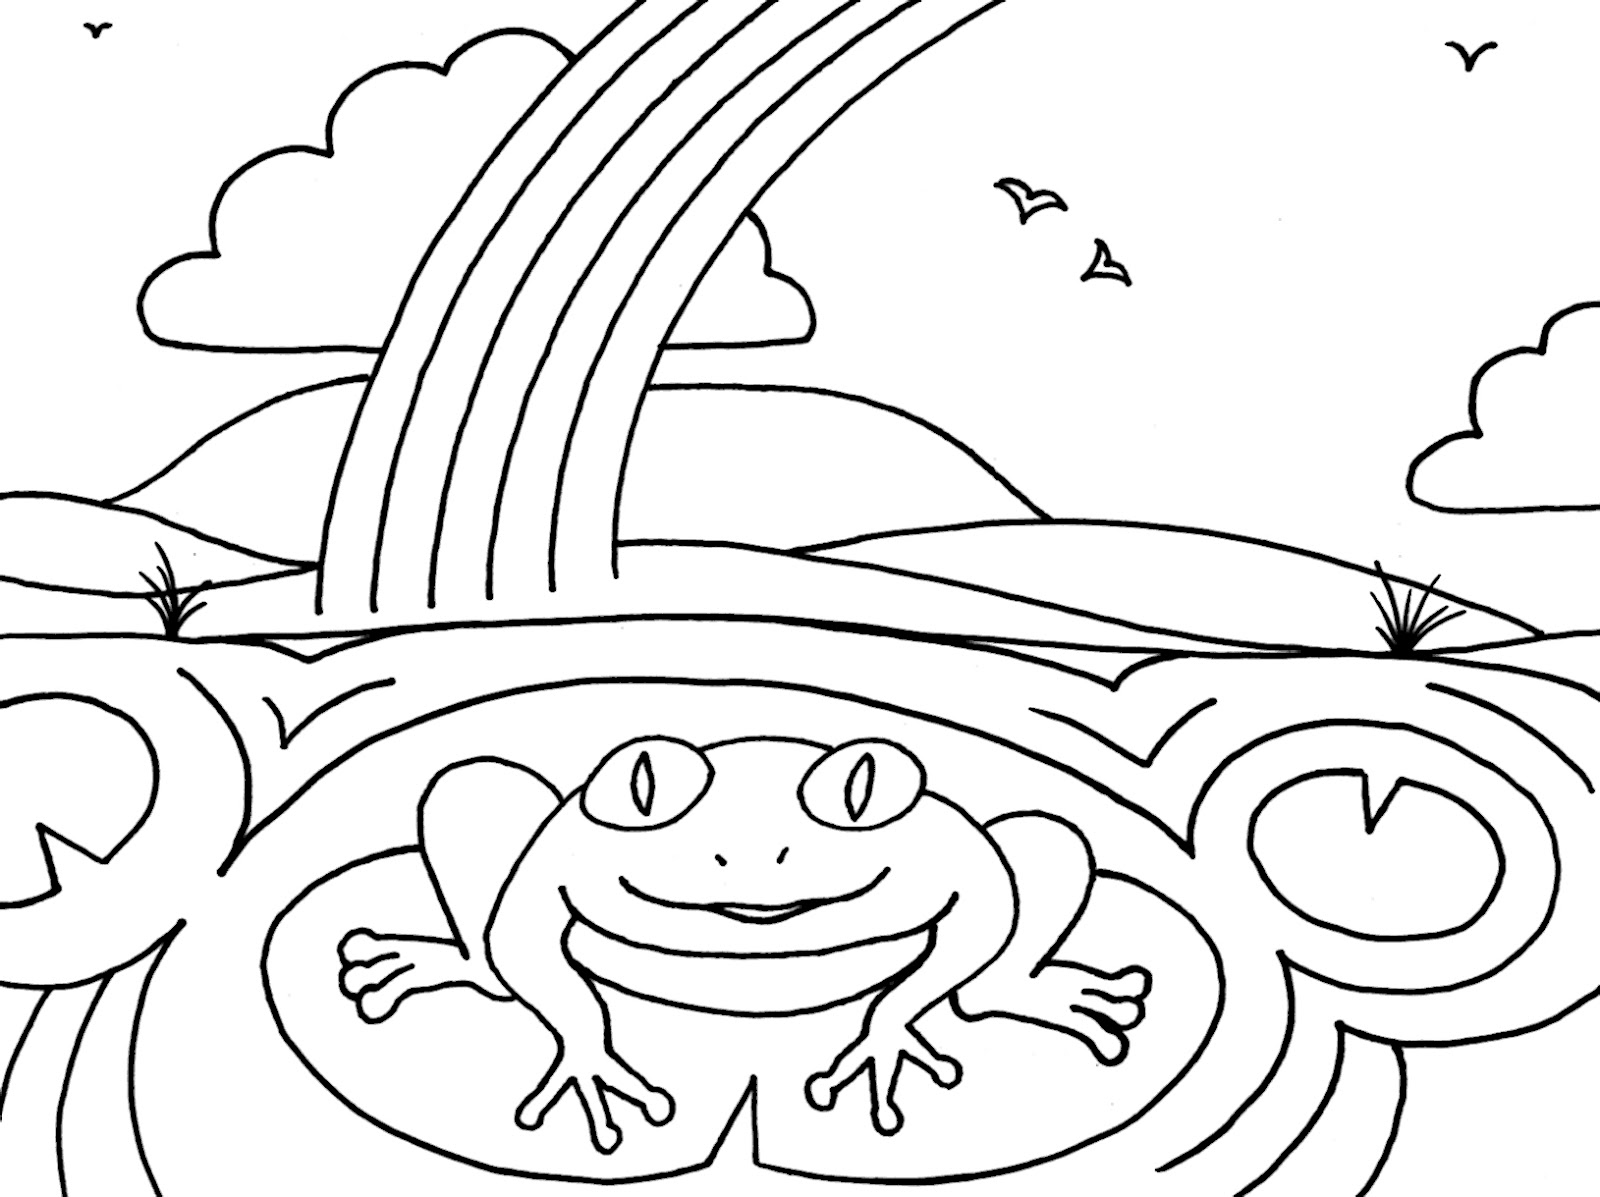 wood frog coloring pages - photo#24